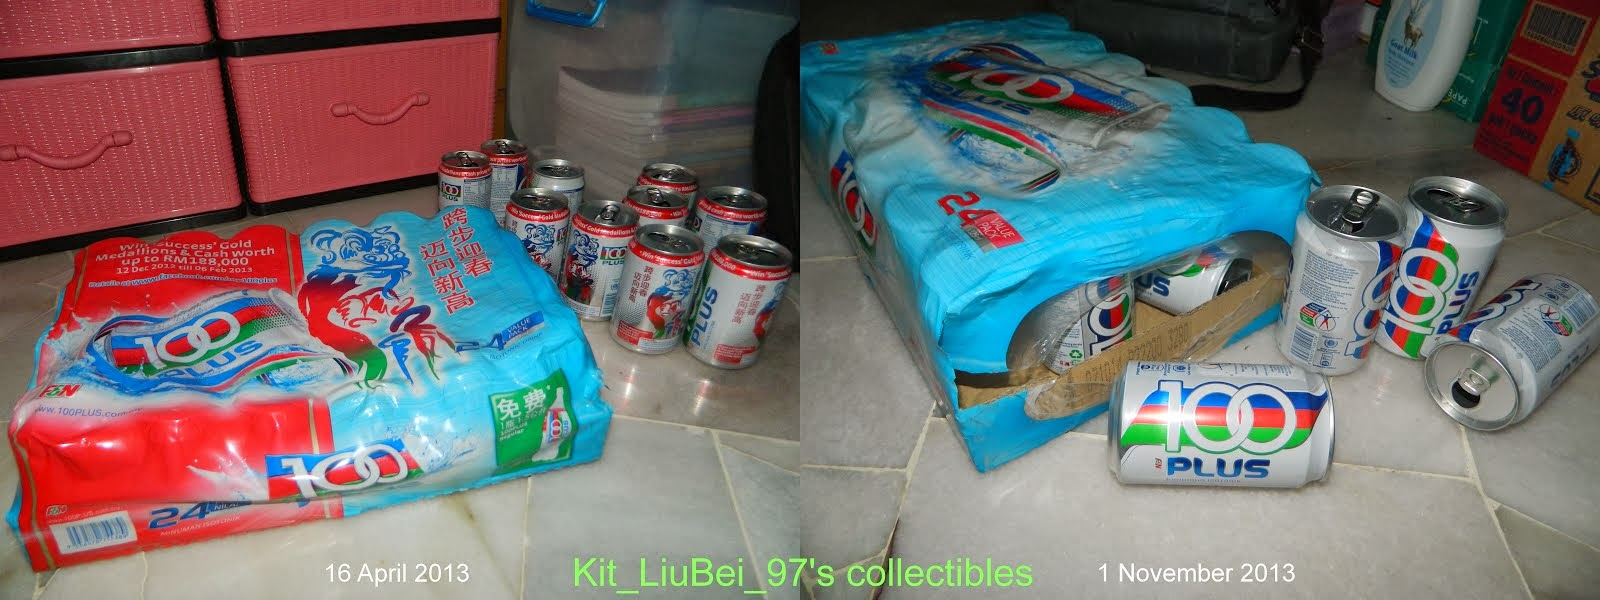 I like 100PLUS and collect various cans!!!